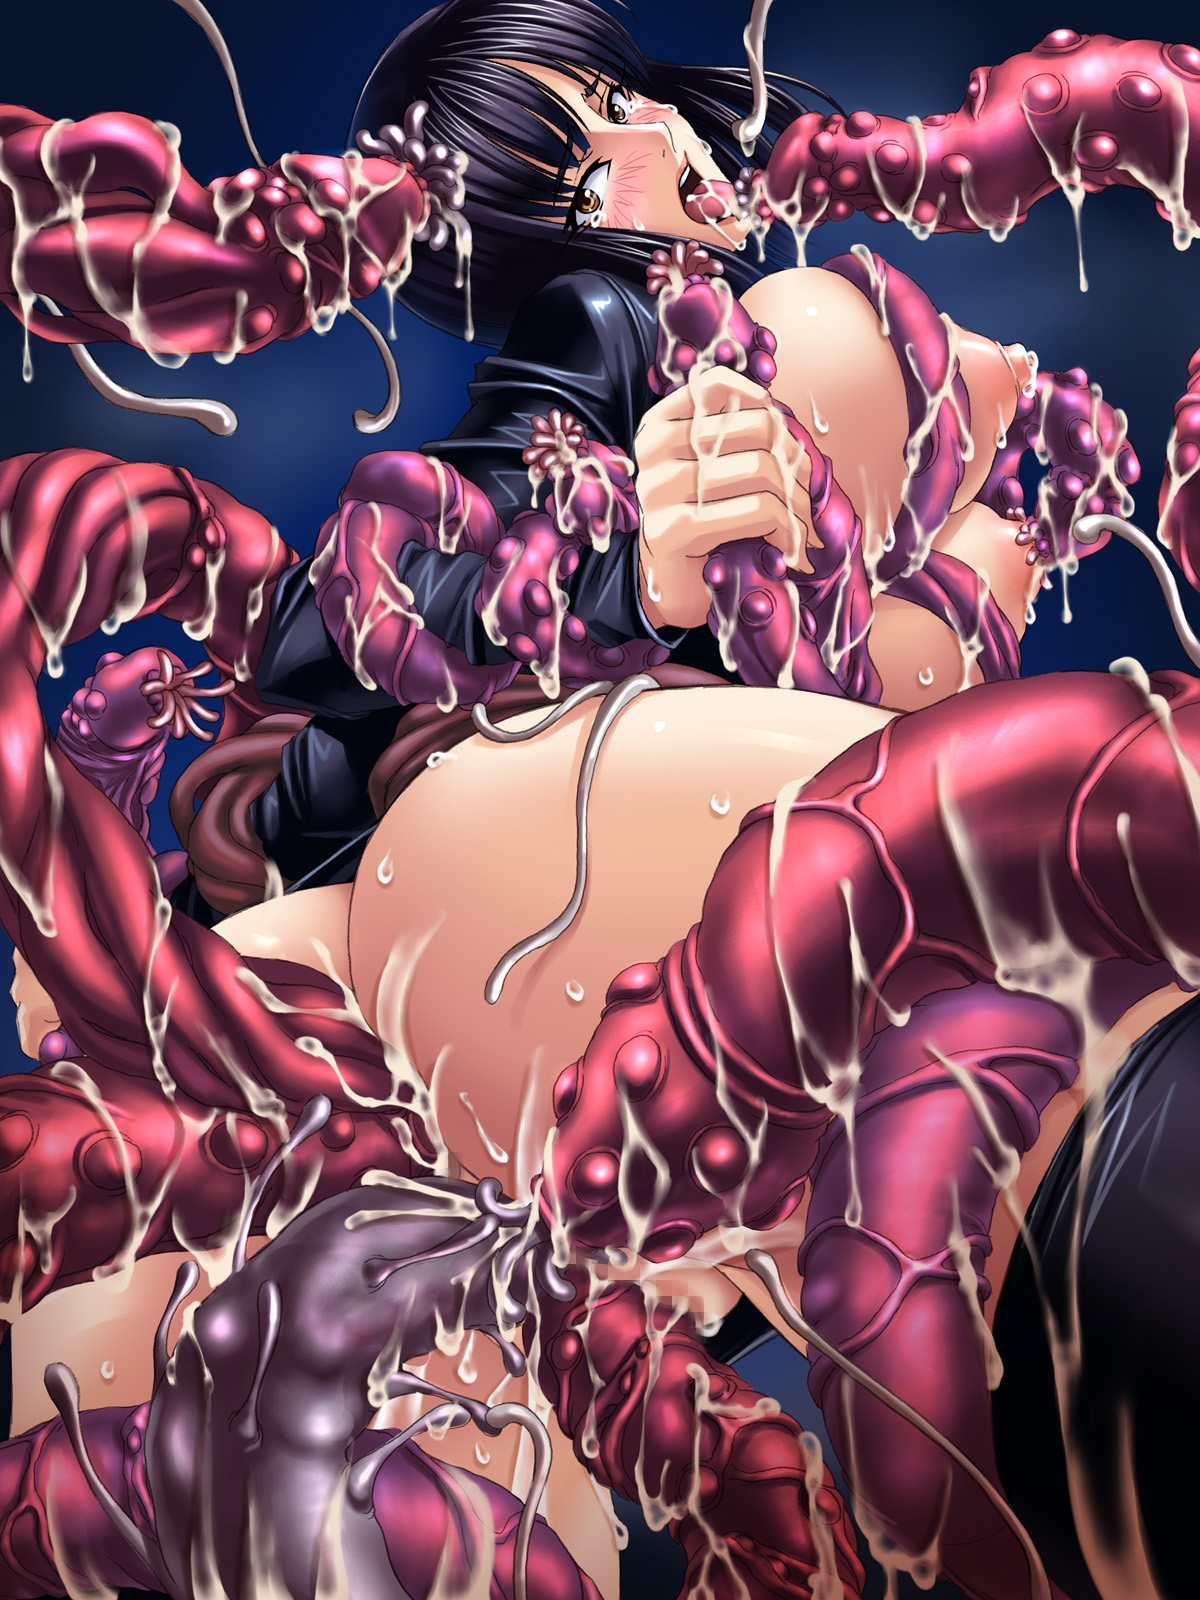 Toon sex pic ##00013047565 female anal anal sex anal sex ass backboob black hair blush breasts censored cum double handjob double penetration drooling fellatio gangbang group sex handjob highres huge breasts insertion kagami looking back monster multiple insertions multiple penises nico robin nipples no bra no panties one piece open clothes open mouth open shirt oral orange eyess penetration penis pussy rape saliva shirt slime solo sweat tear tentacle thighhighs tongue vaginal penetration vaginal penetration